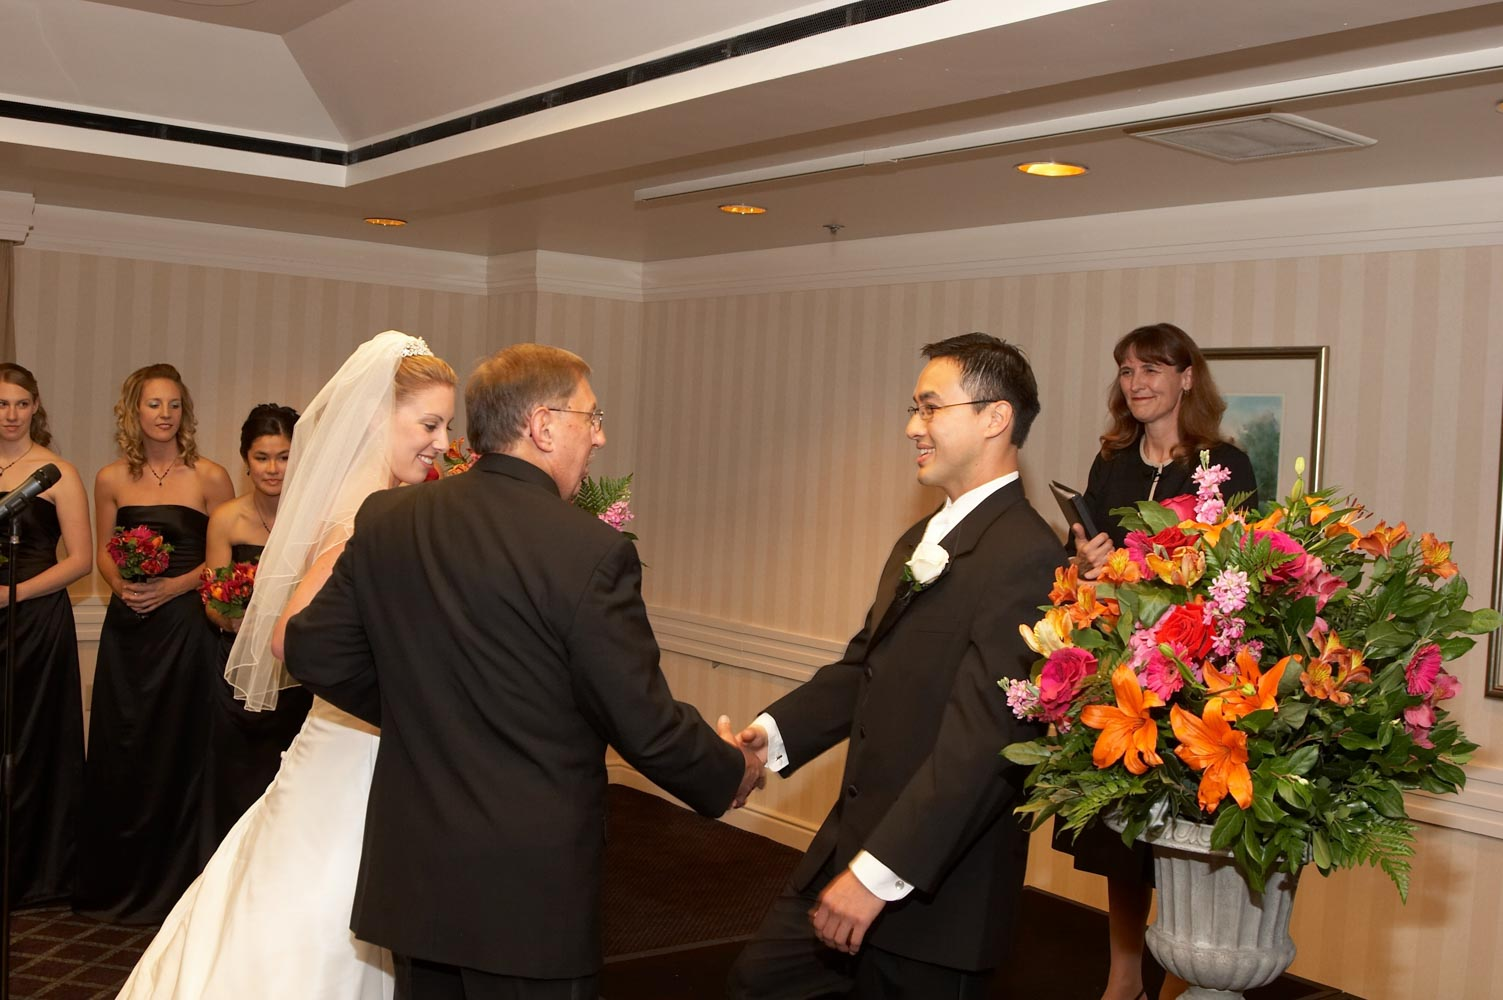 Bride and her father greeting groom at beginning of wedding ceremony